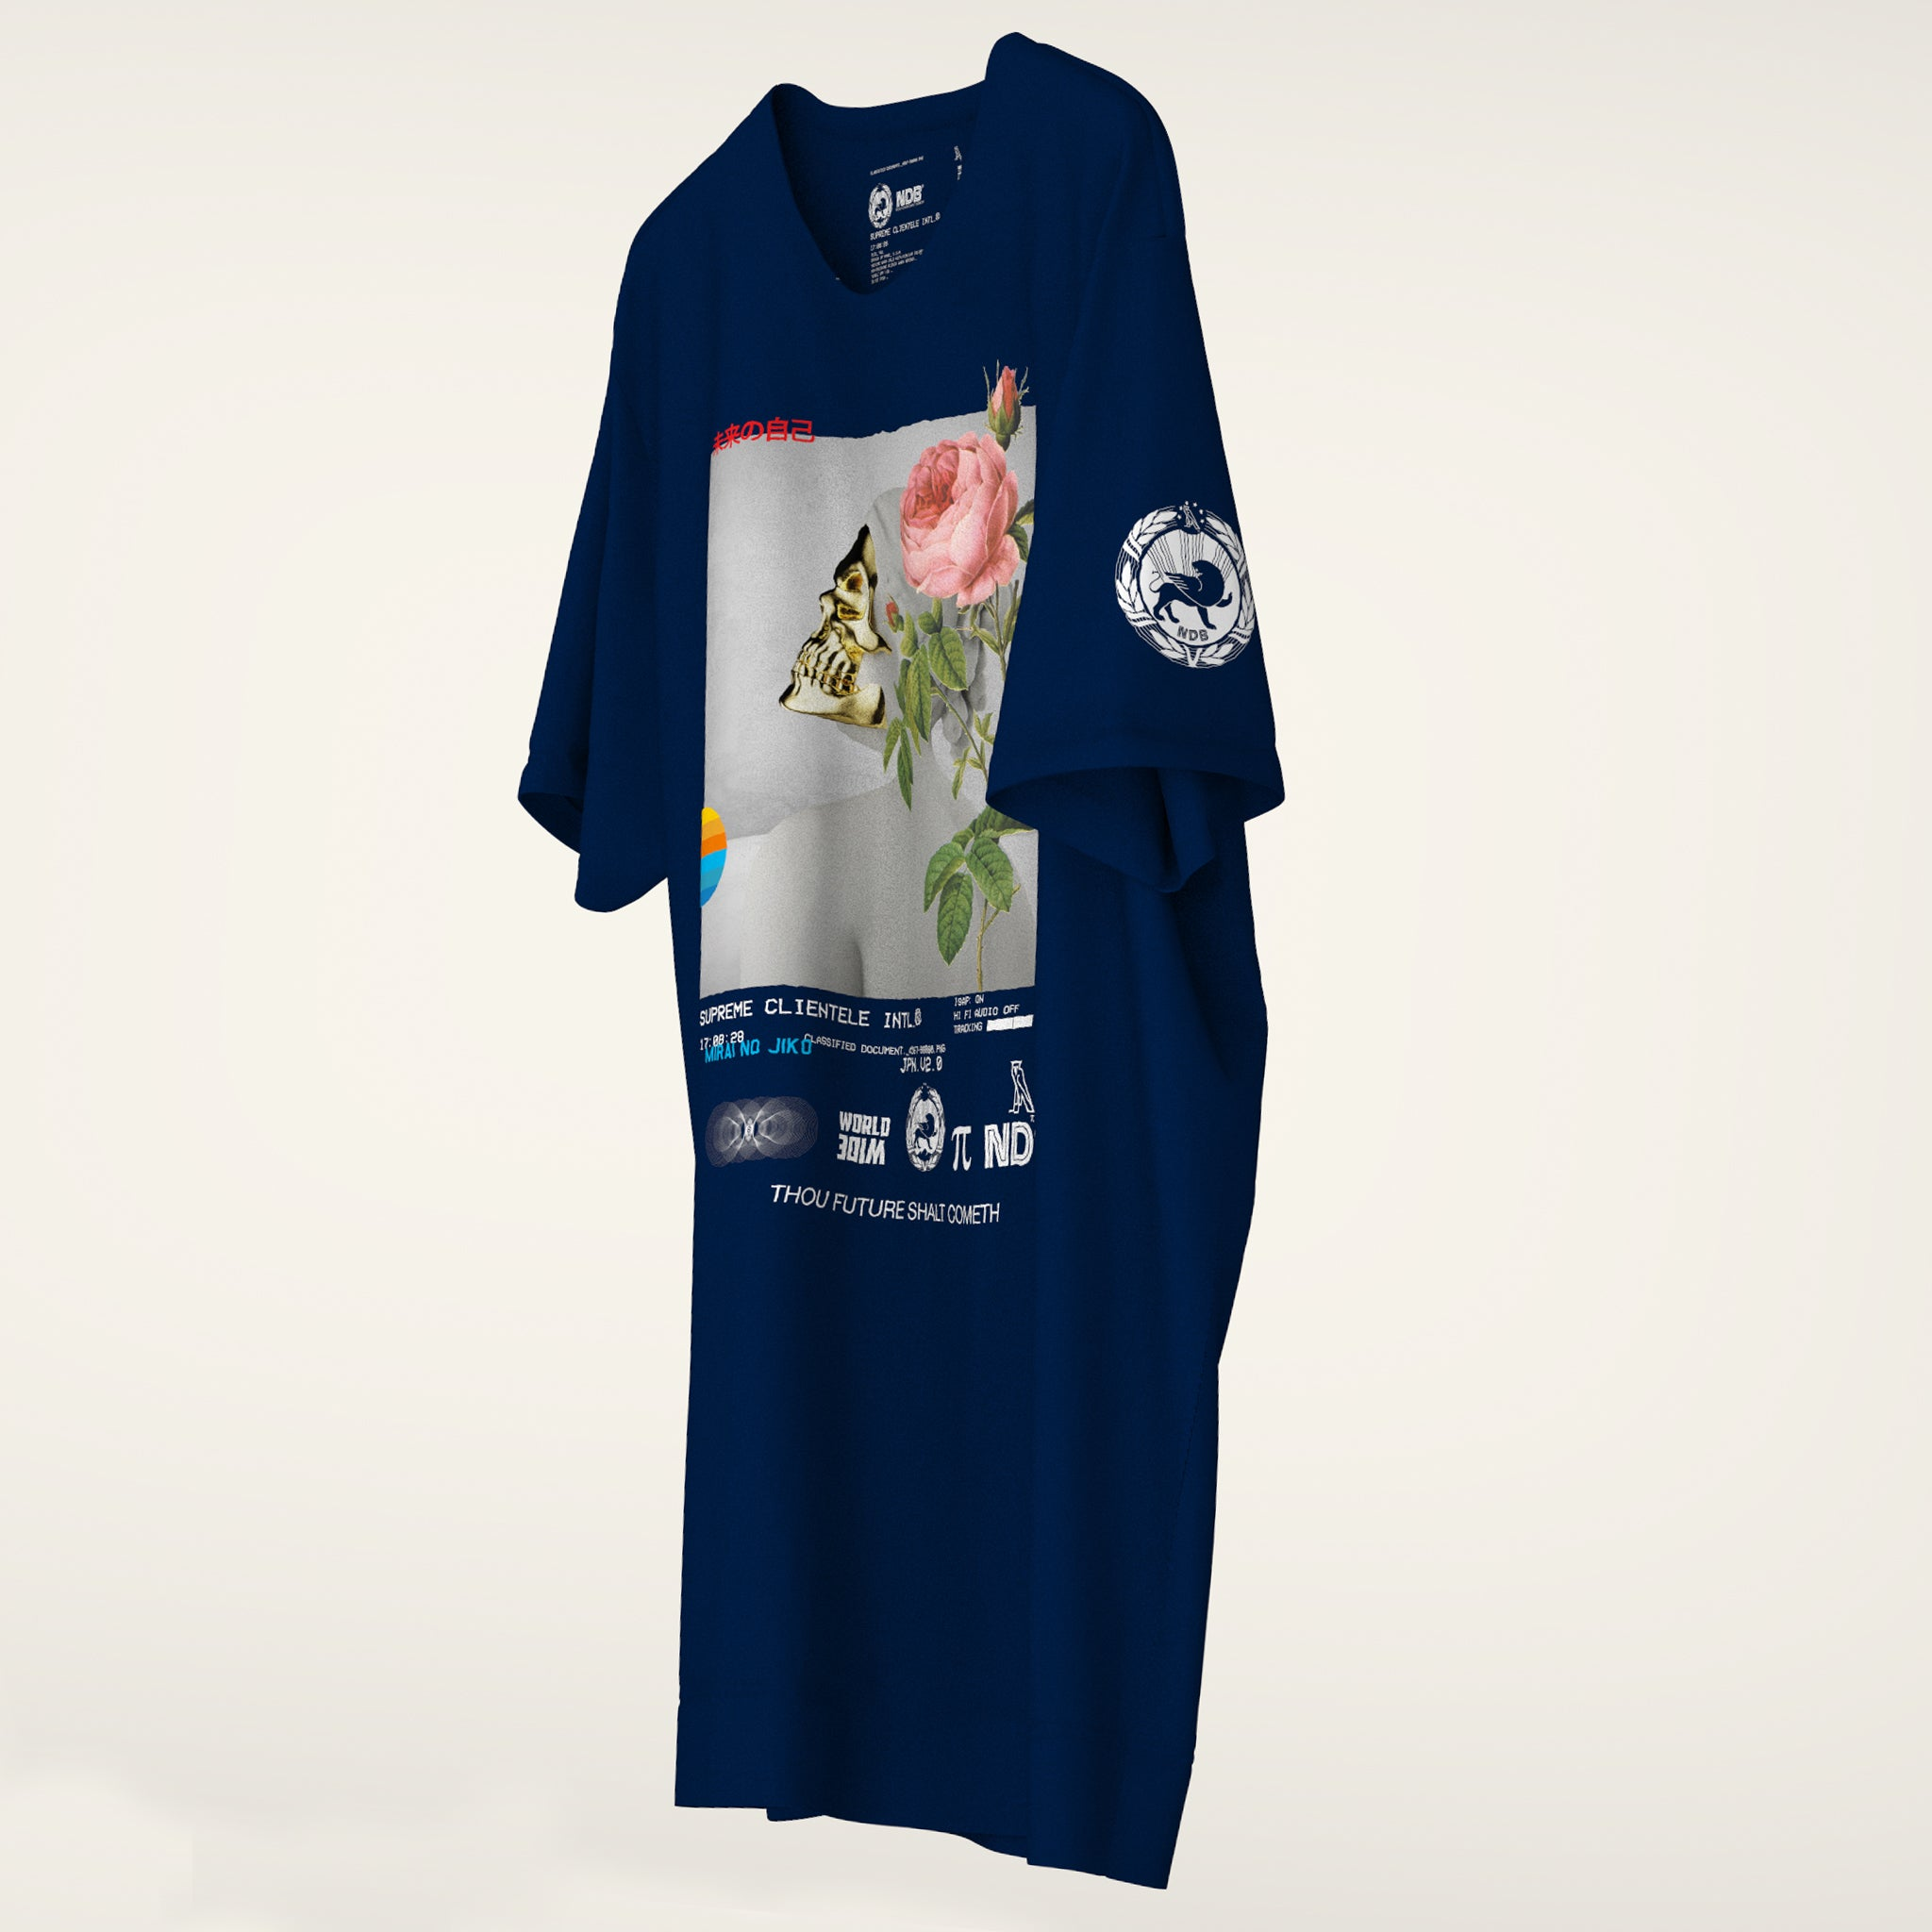 MARAI NO JIKO T-shirt